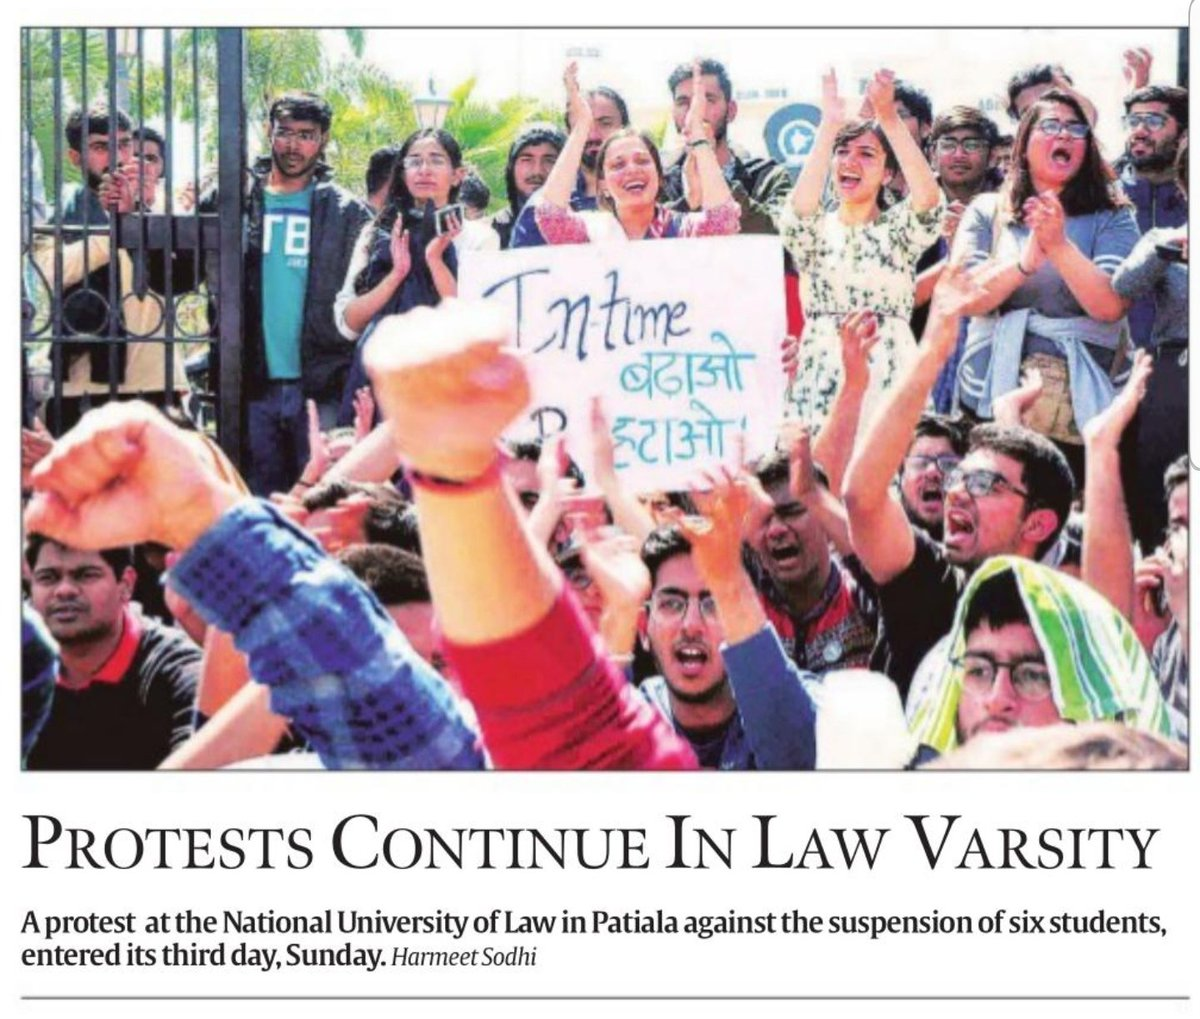 Thank you @IndianExpress! Please continue your coverage against these tyrants. #rgnul #notanymore #justiceforrgnul #FreeRGNUL #wewantjustice #shame<br>http://pic.twitter.com/gvXpoHNvSU